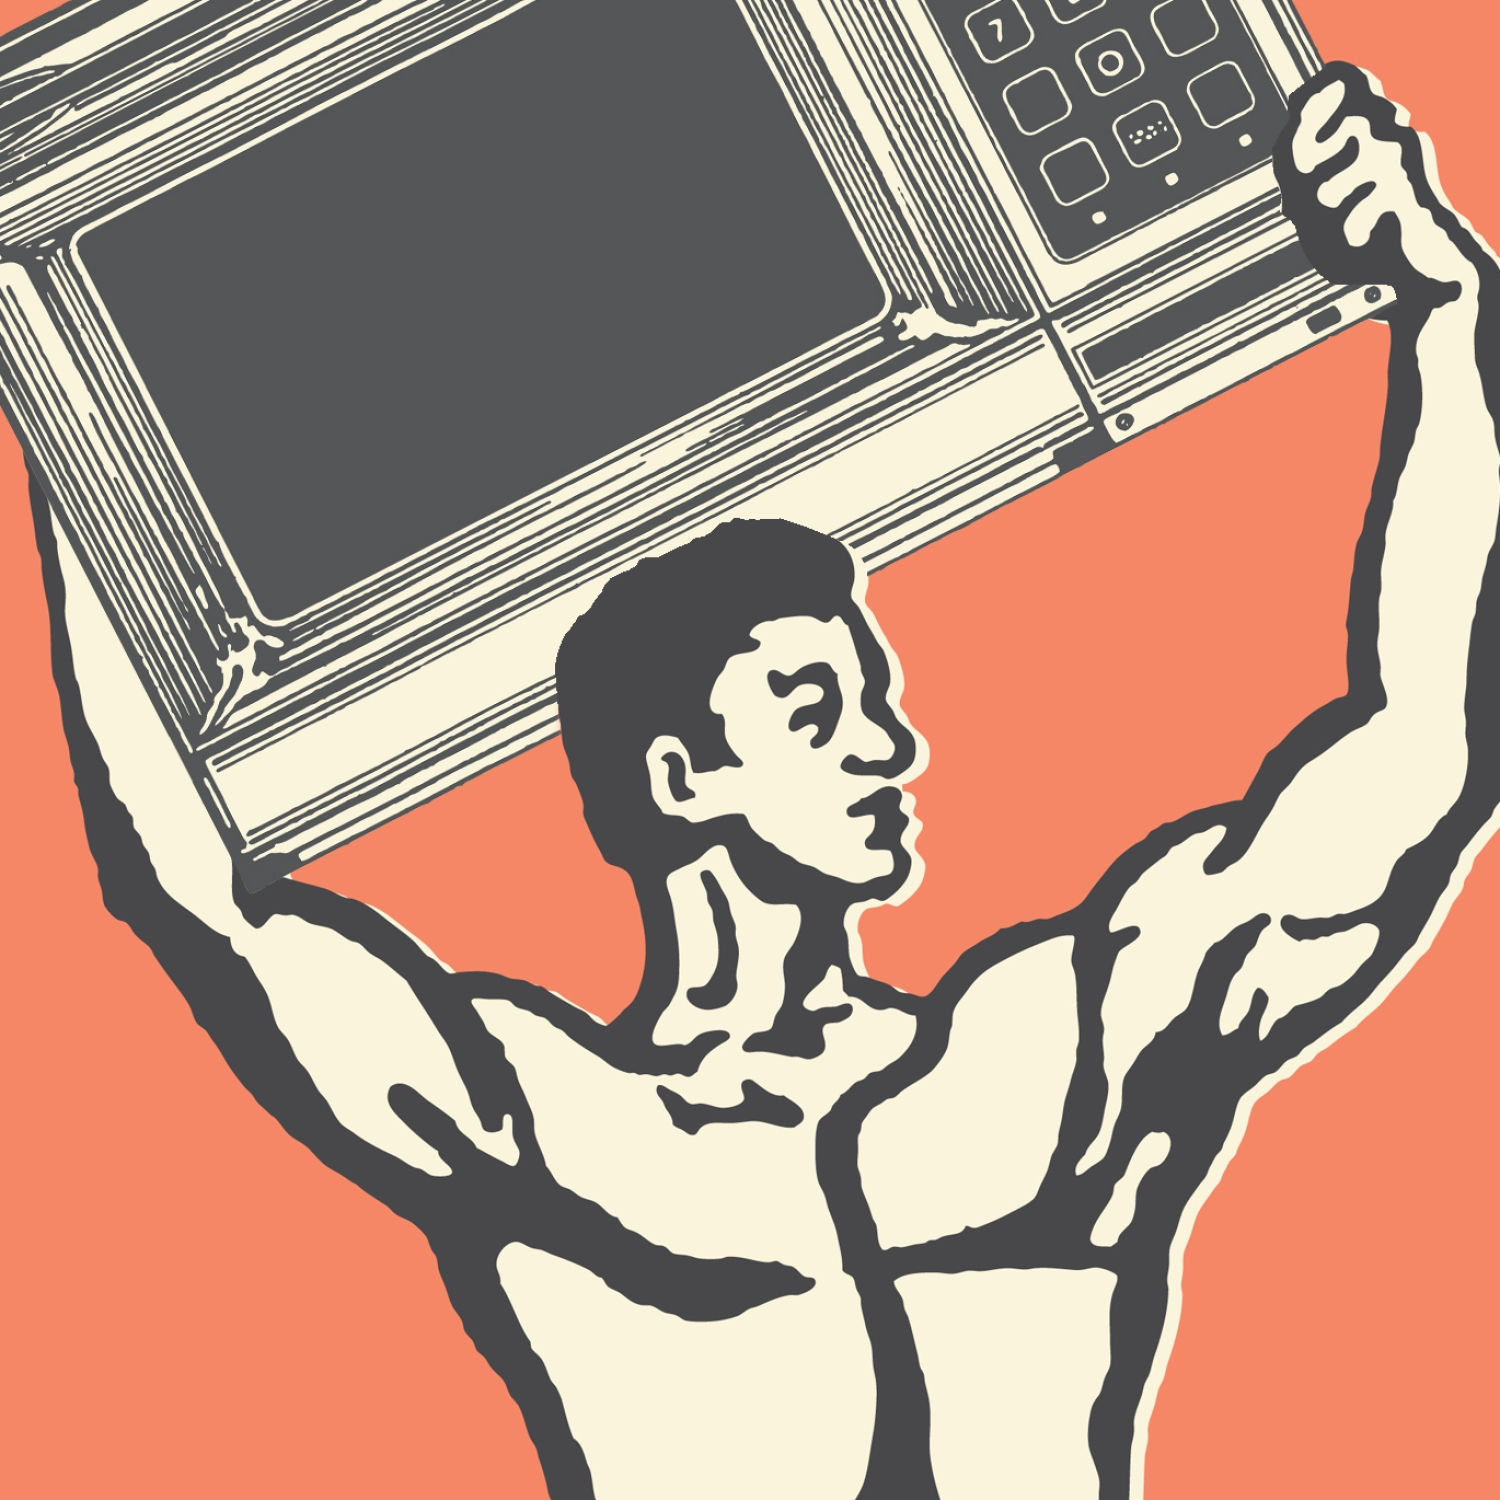 Illustration of strongman holding microwave above his head